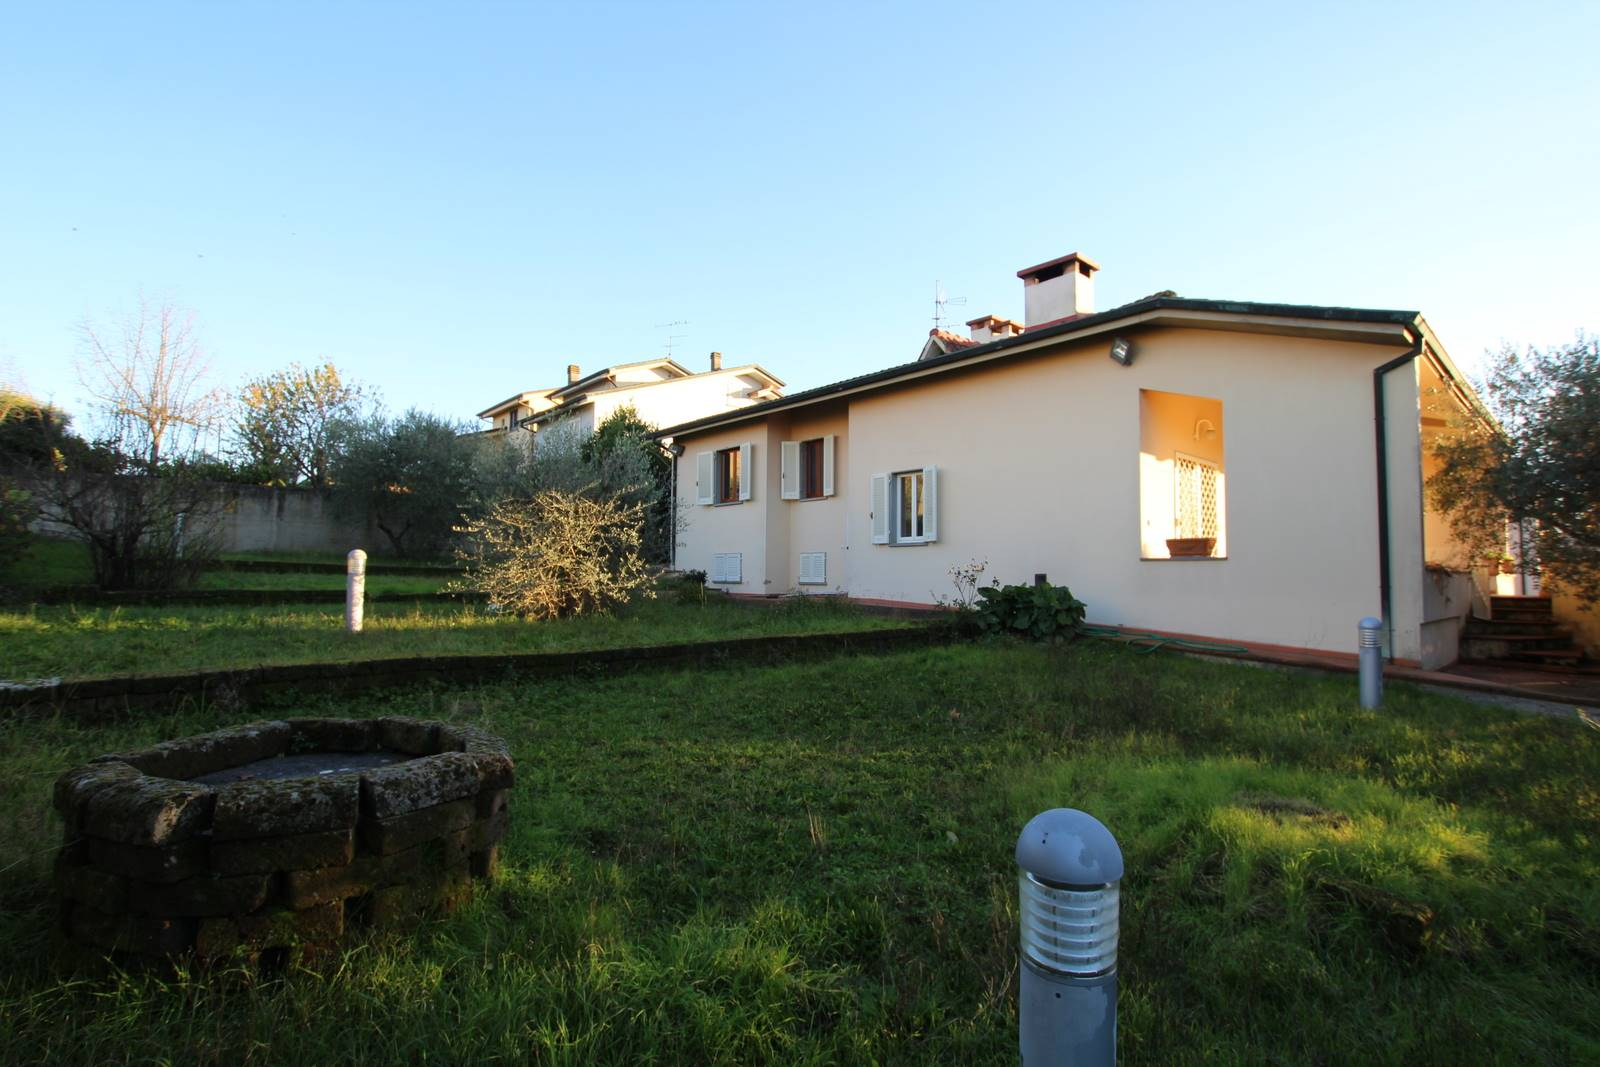 CERRETO GUIDI, Villa for sale of 250 Sq. mt., Excellent Condition, Heating Individual heating system, Energetic class: G, Epi: 276 kwh/m2 year,